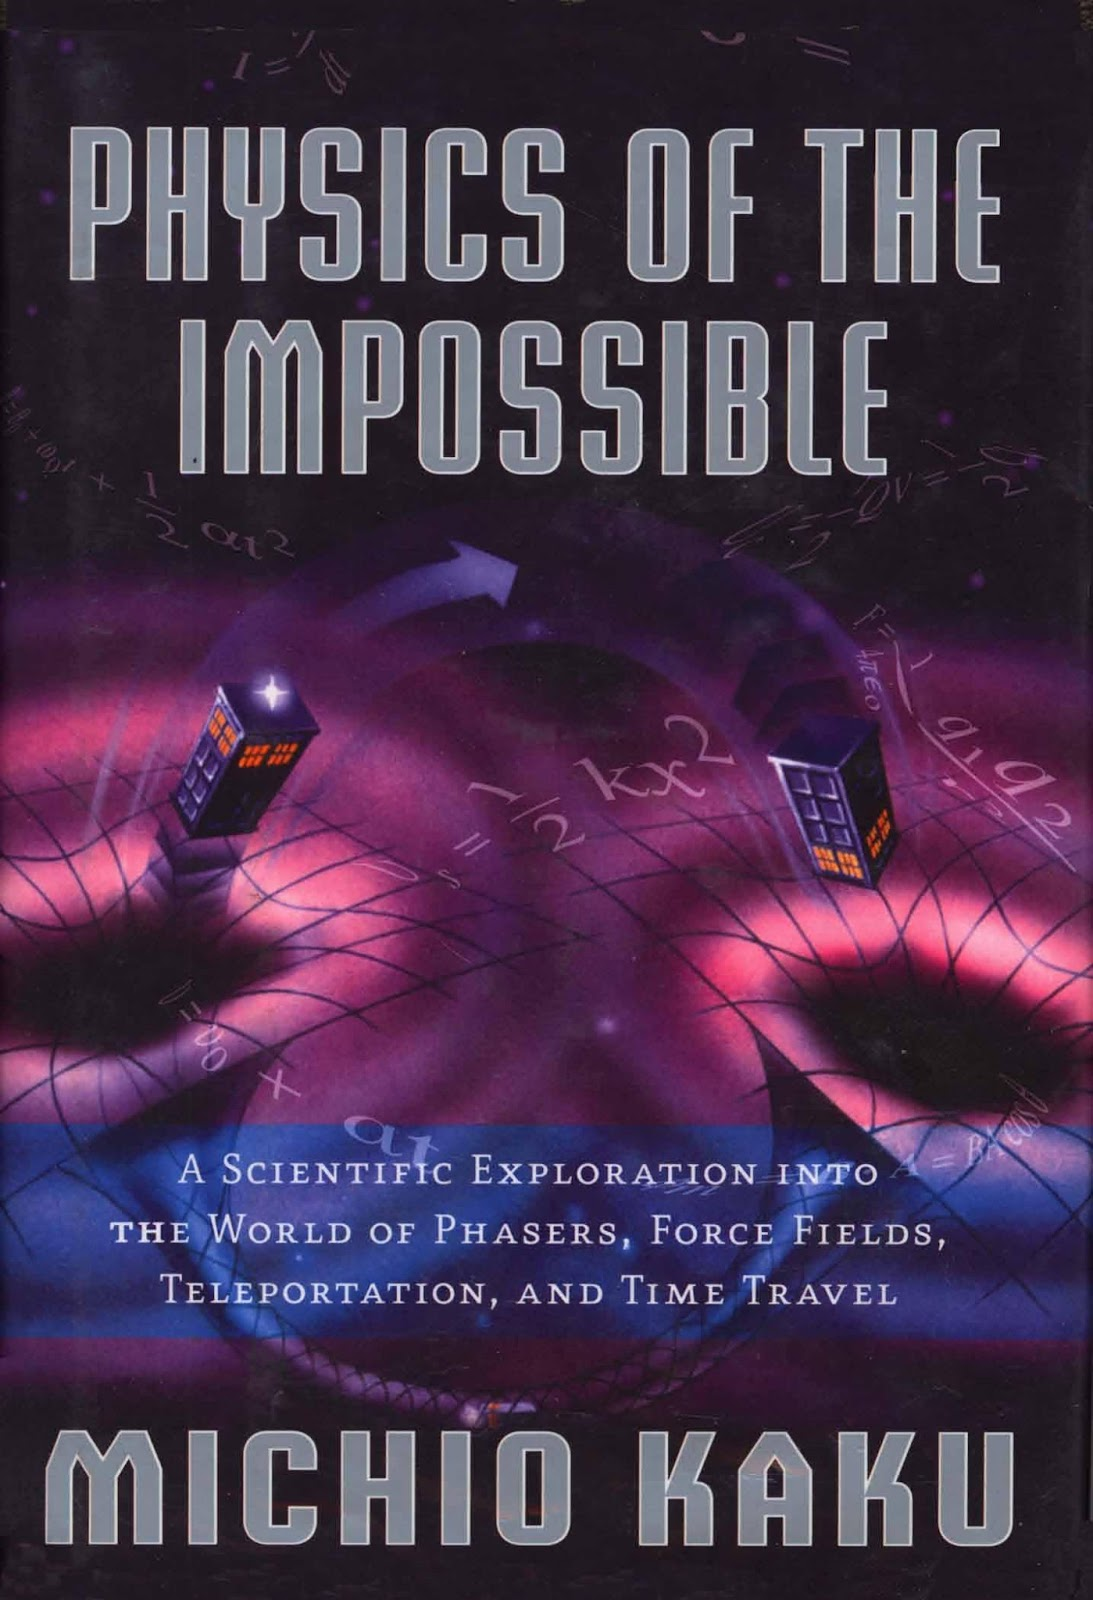 review on physics of the impossible by michio kaku essay Physics of the impossible: a scientific exploration into the world of phasers, force fields, teleportation, and time travel by michio kaku my rating: 5 of 5 stars.